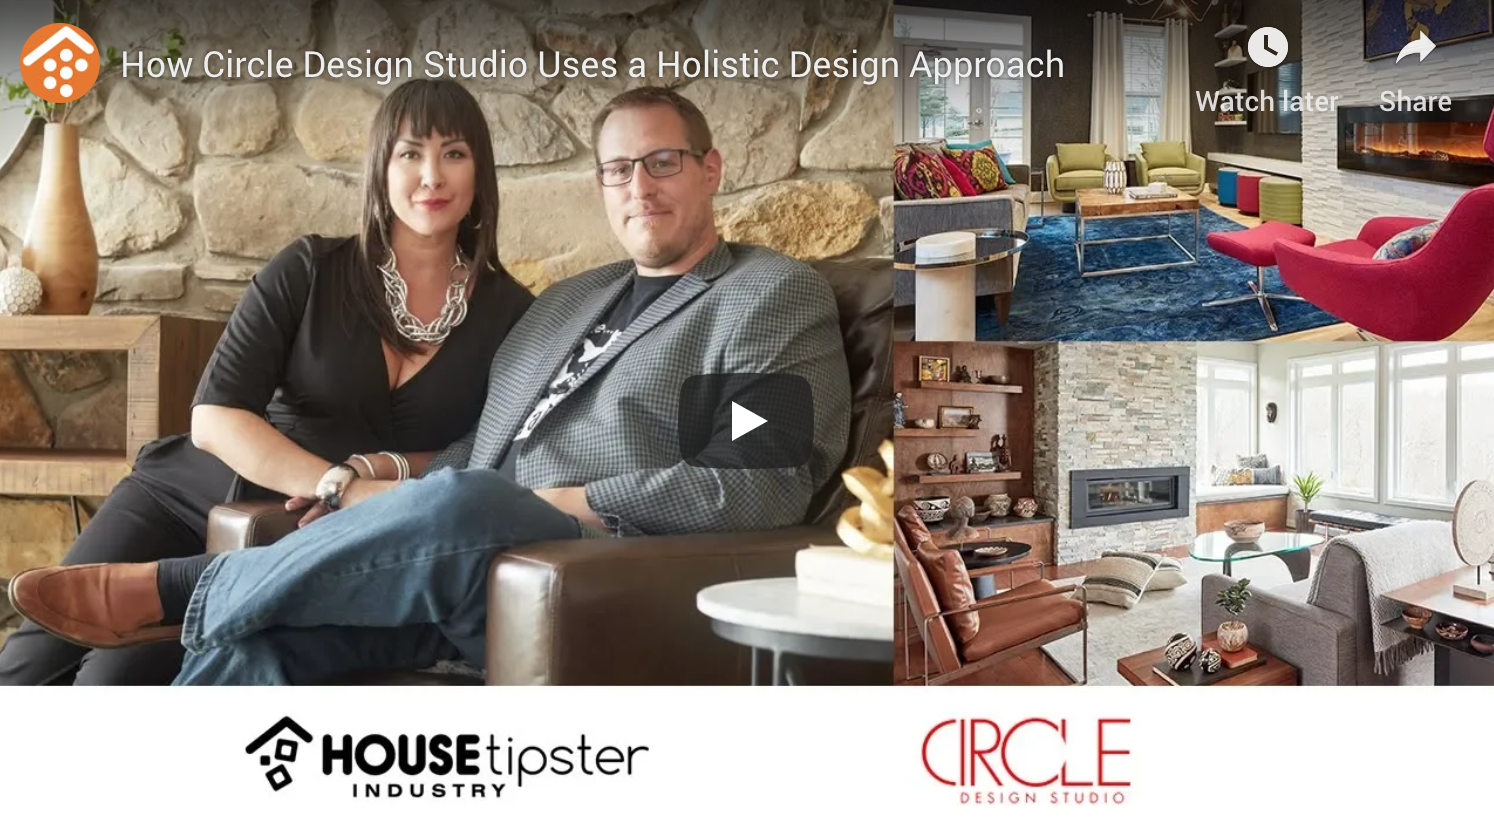 CIRCLE Interviewed by House Tipster